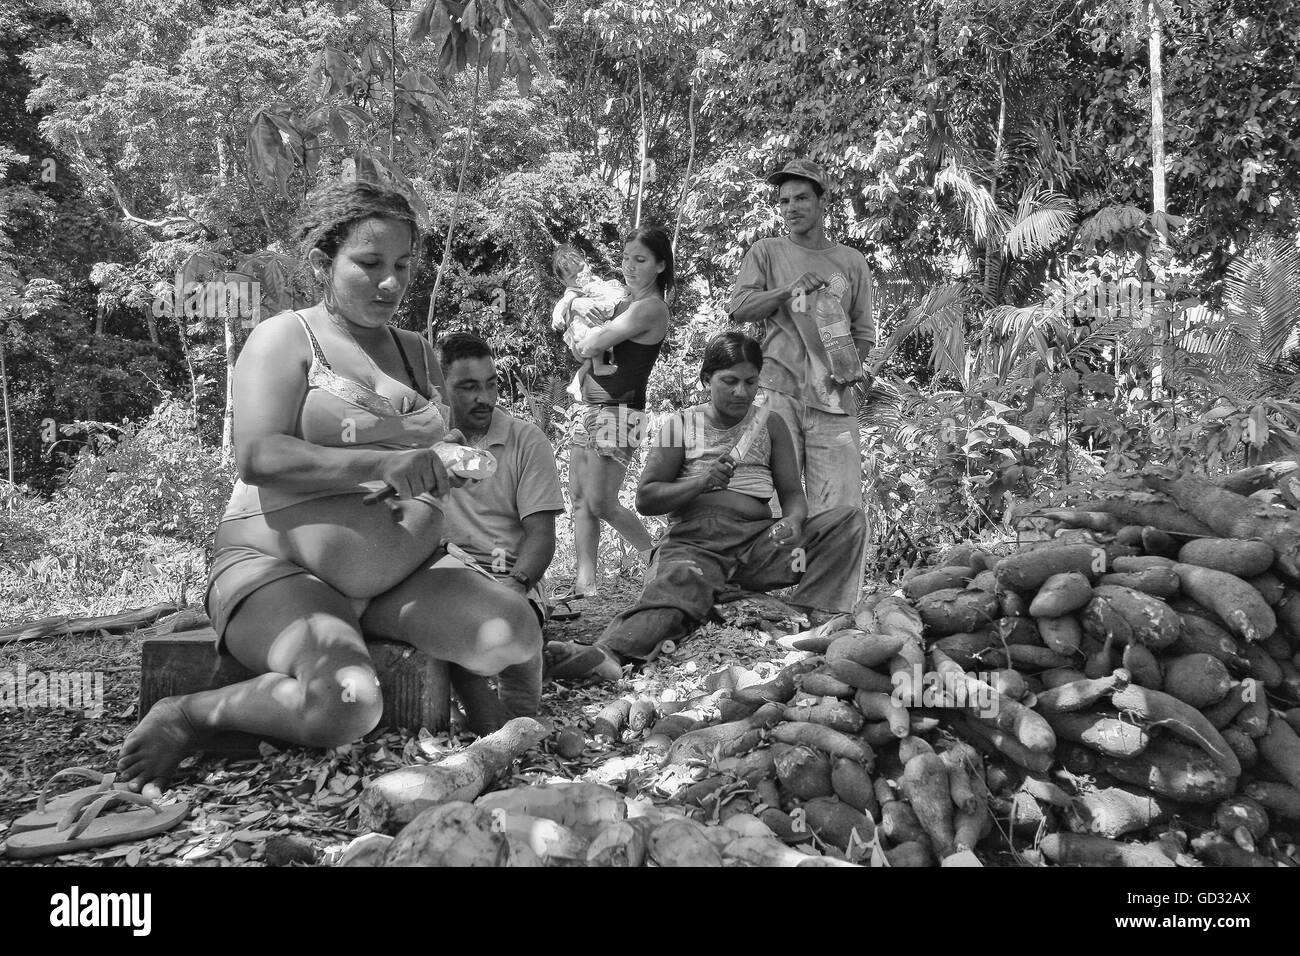 Black and white picture of indigenous people peeling cassava roots to proccess, remove cyanide and prepare for cooking. - Stock Image